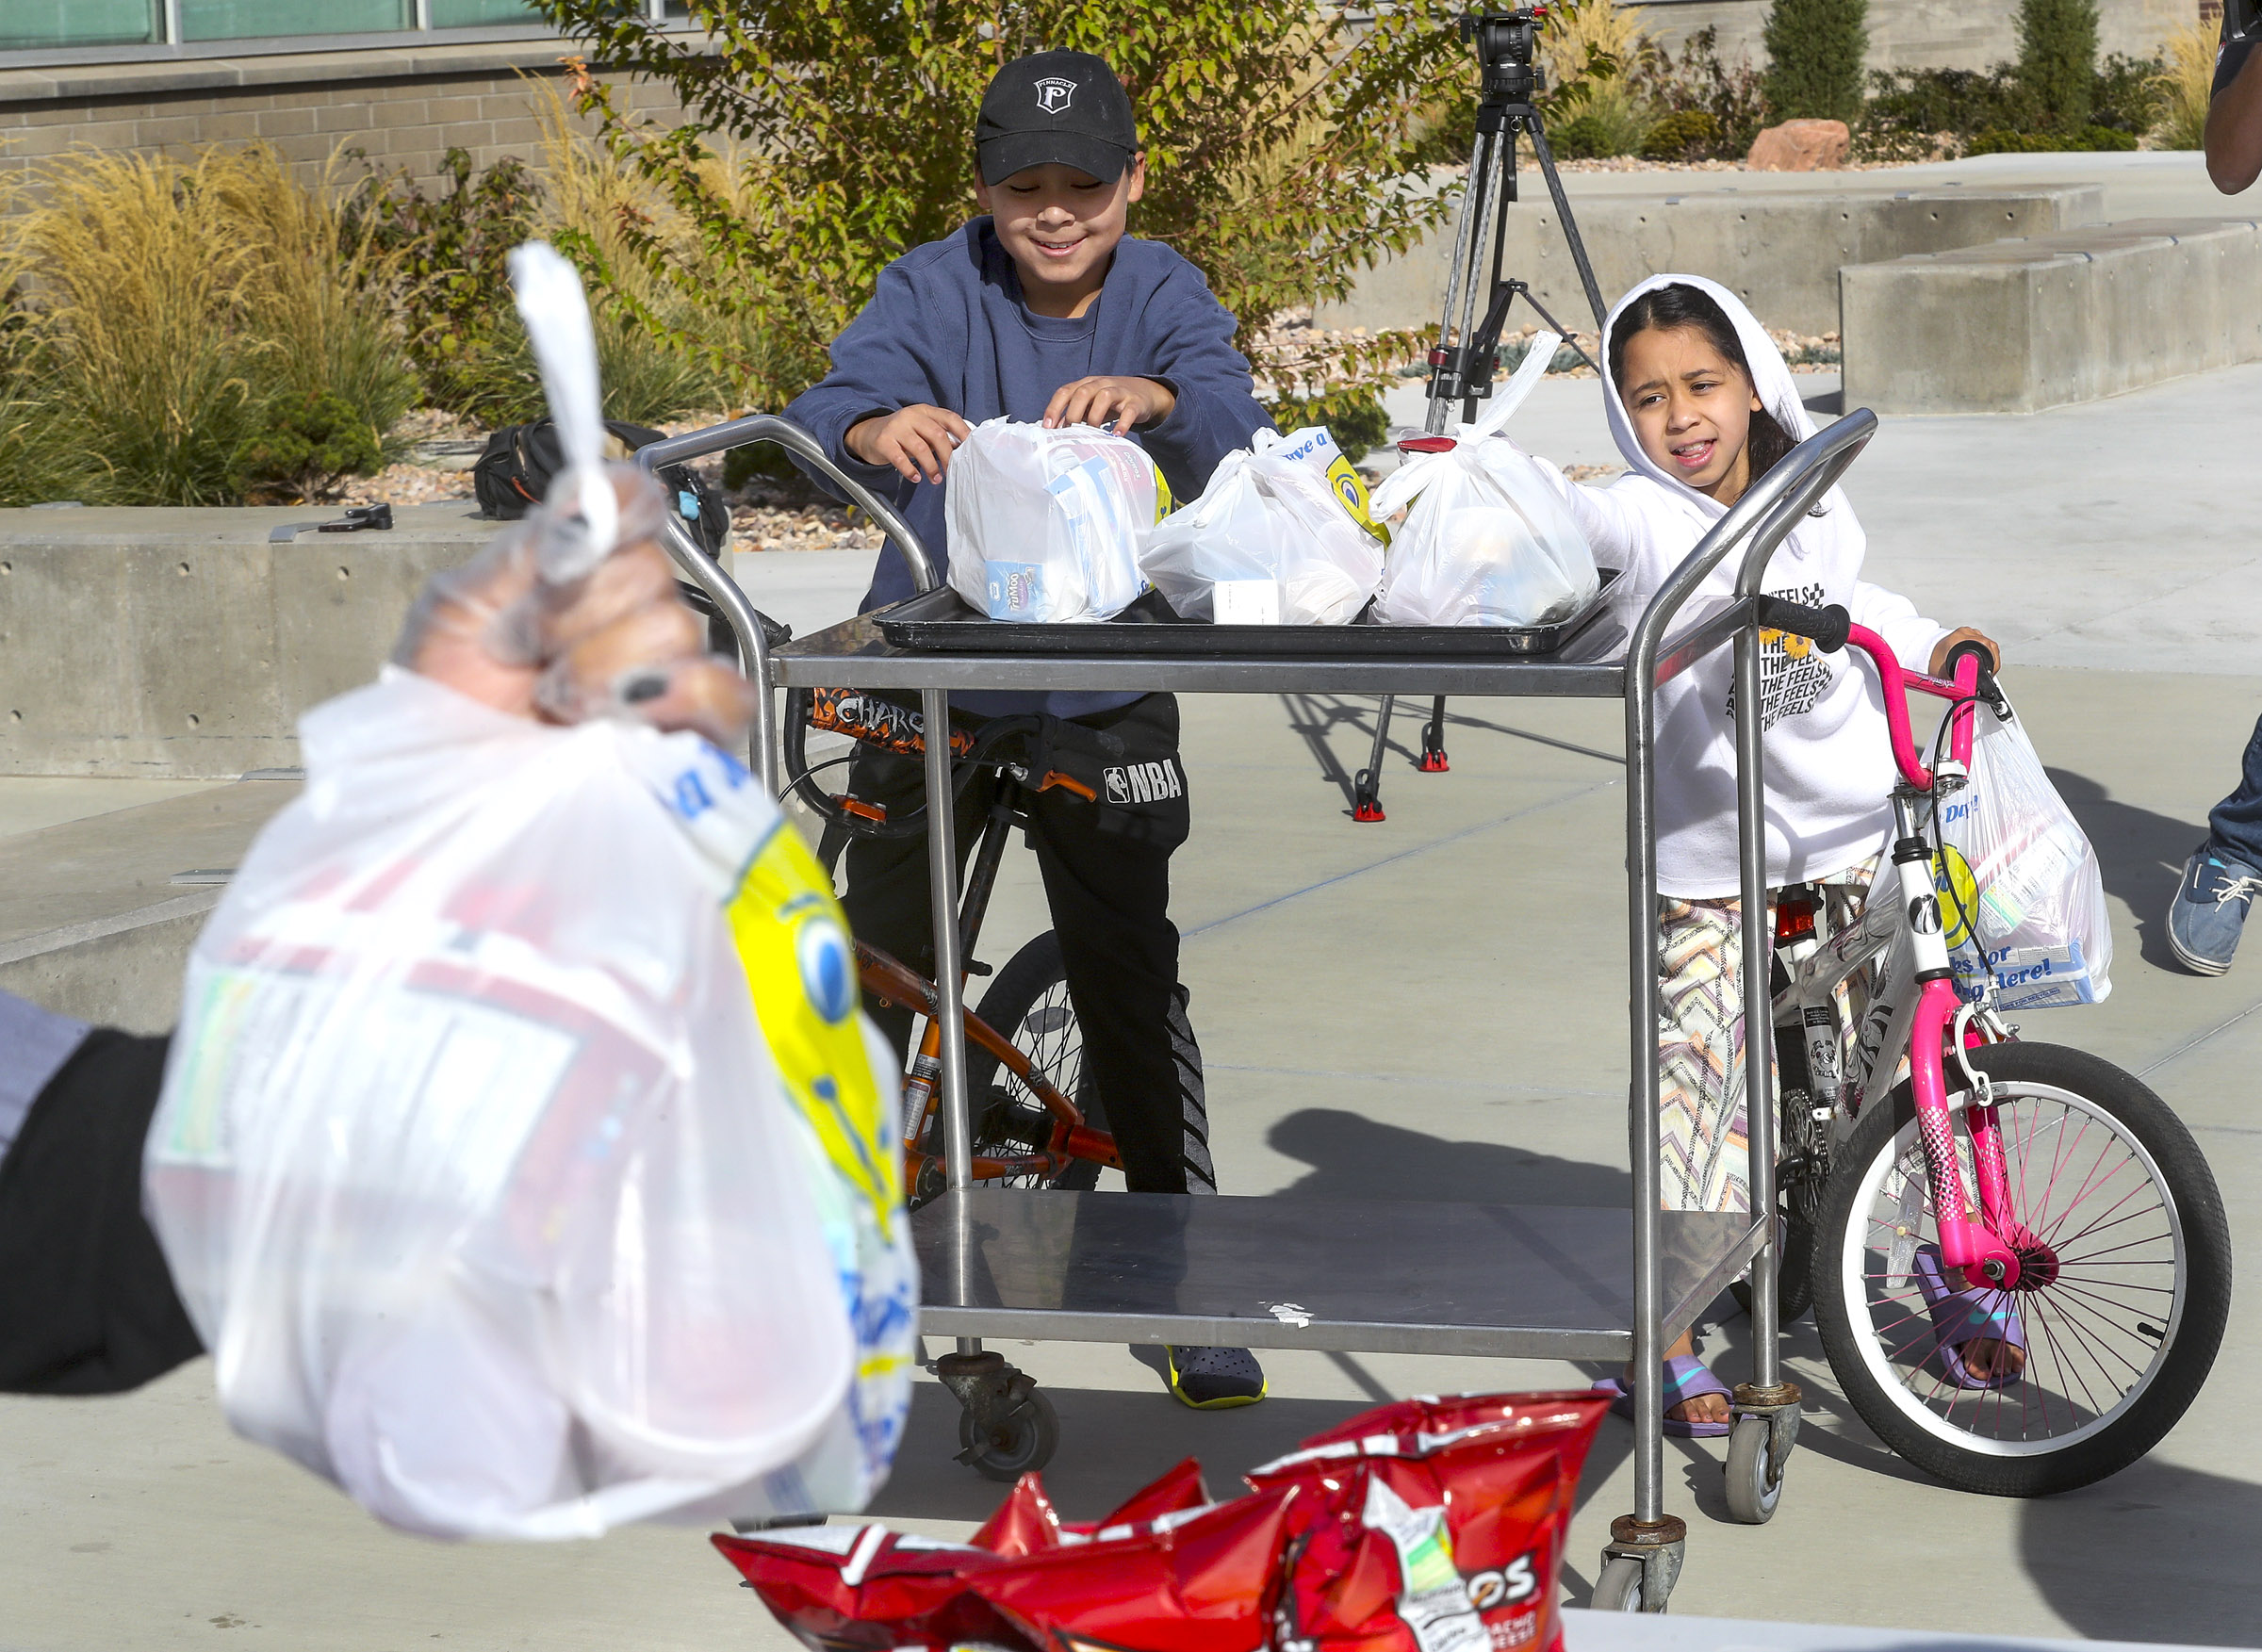 Jerson Arroyocruz and his sister Genesis get grab-and-go lunches for their family at Edison Elementary School. Expanded child nutrition help is part of the $3.5 trillion budget proposal Democrats hope to get through reconciliation,